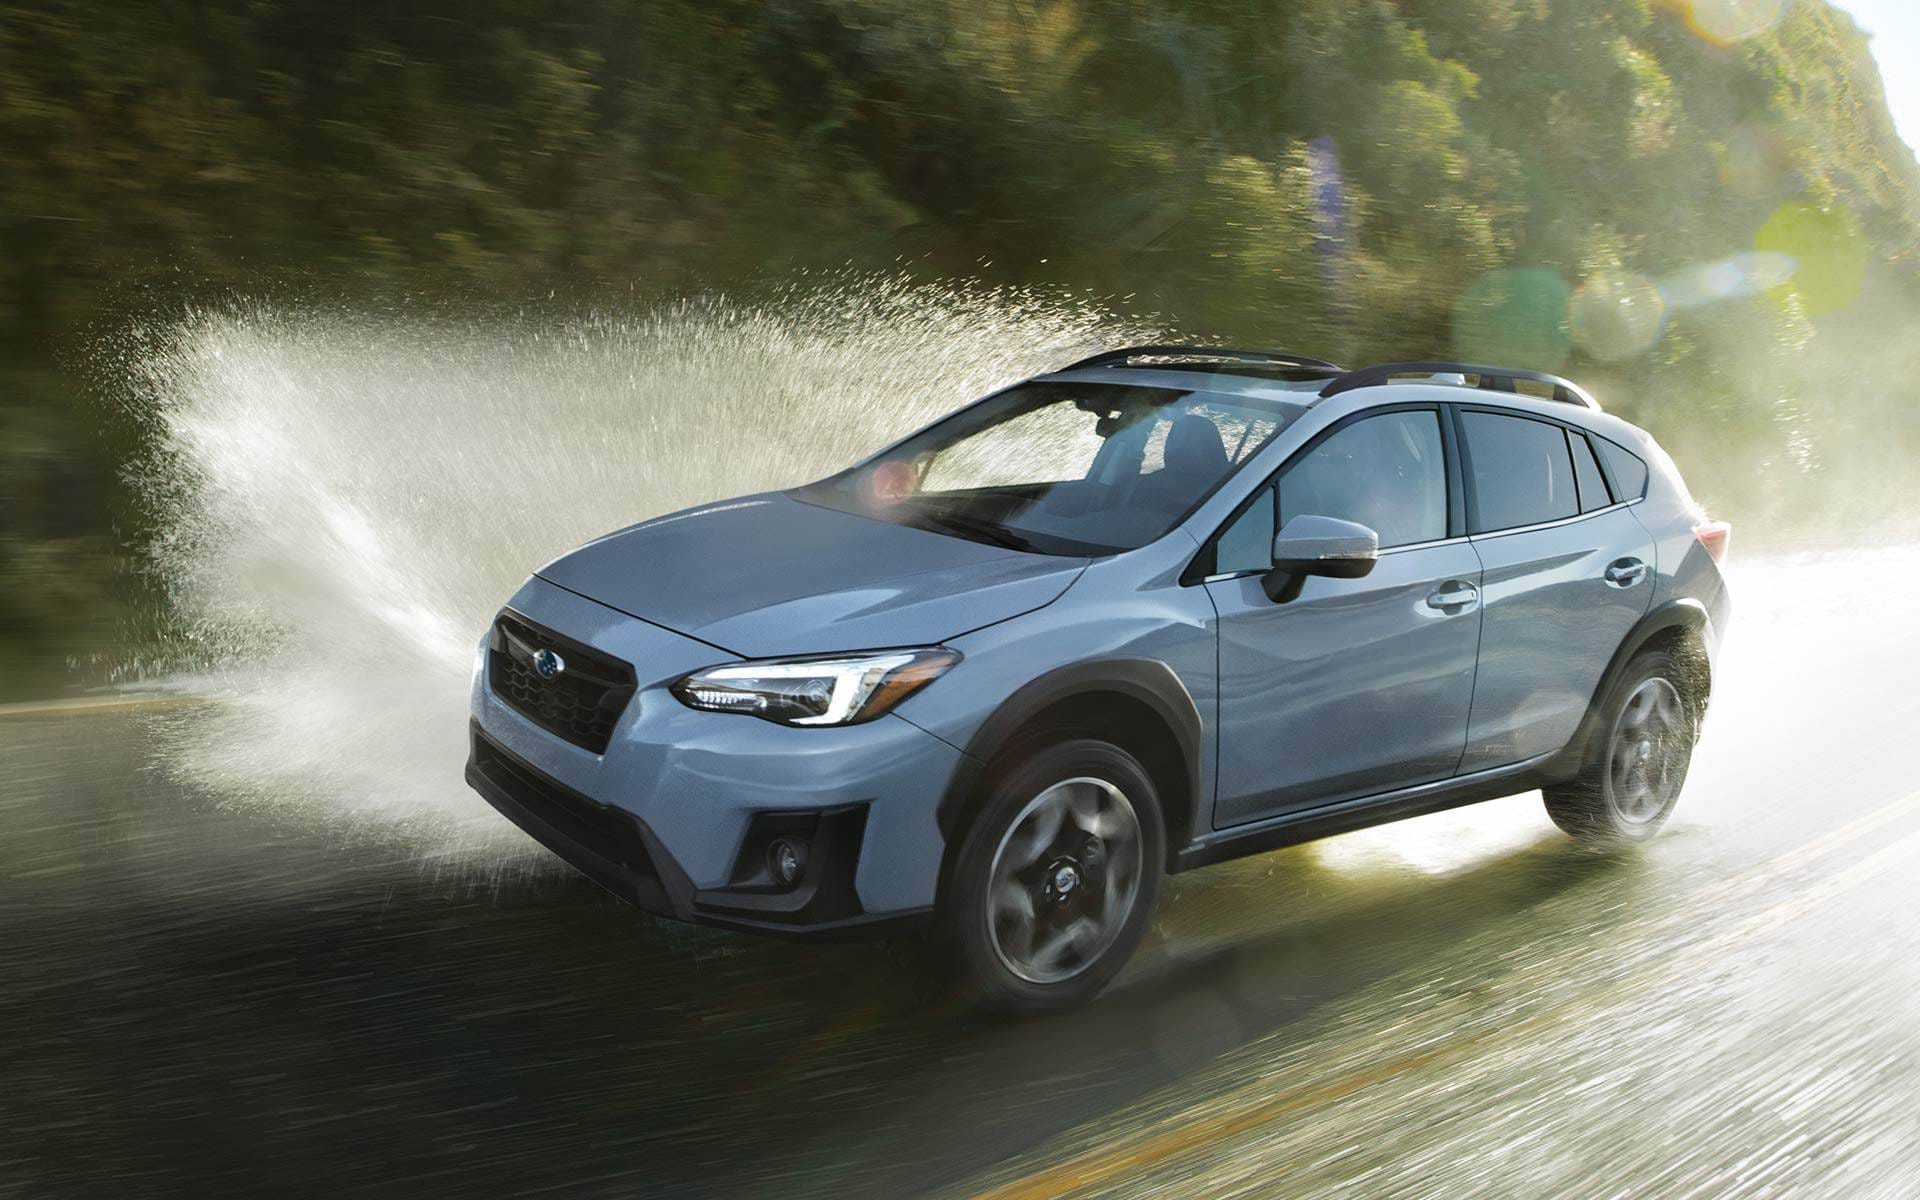 2019 Subaru Crosstrek Bergen County NJ